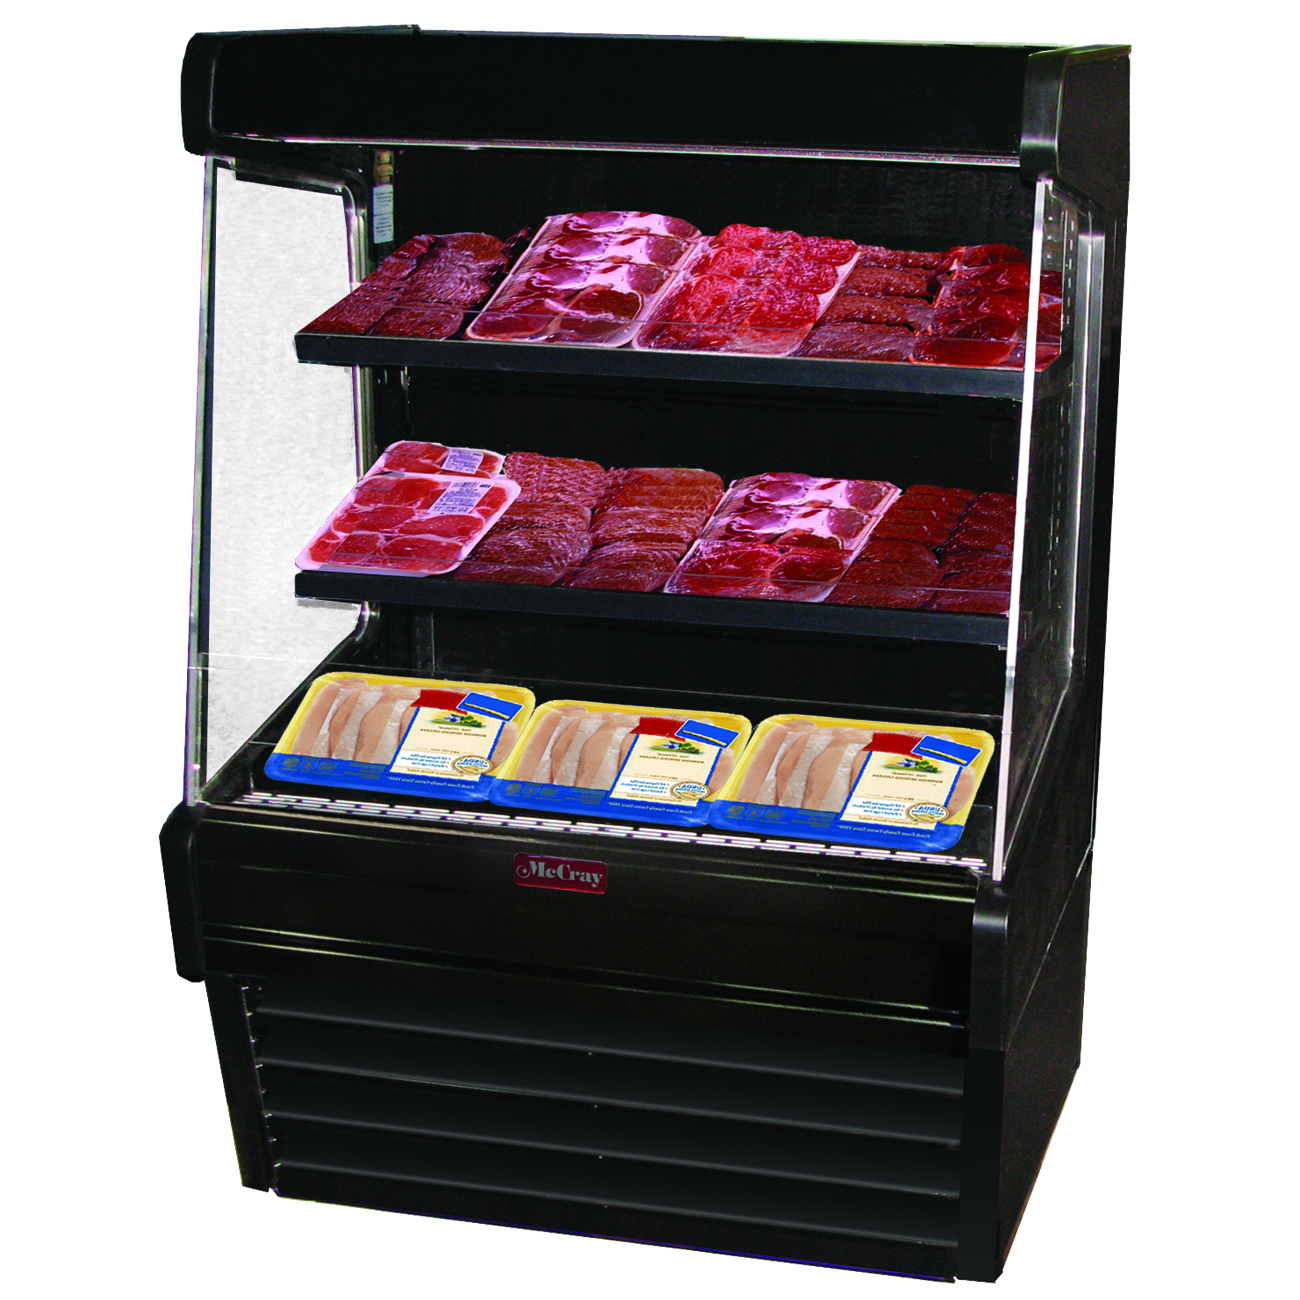 Howard-McCray R-OM30E-6L-B-LED merchandiser, open refrigerated display